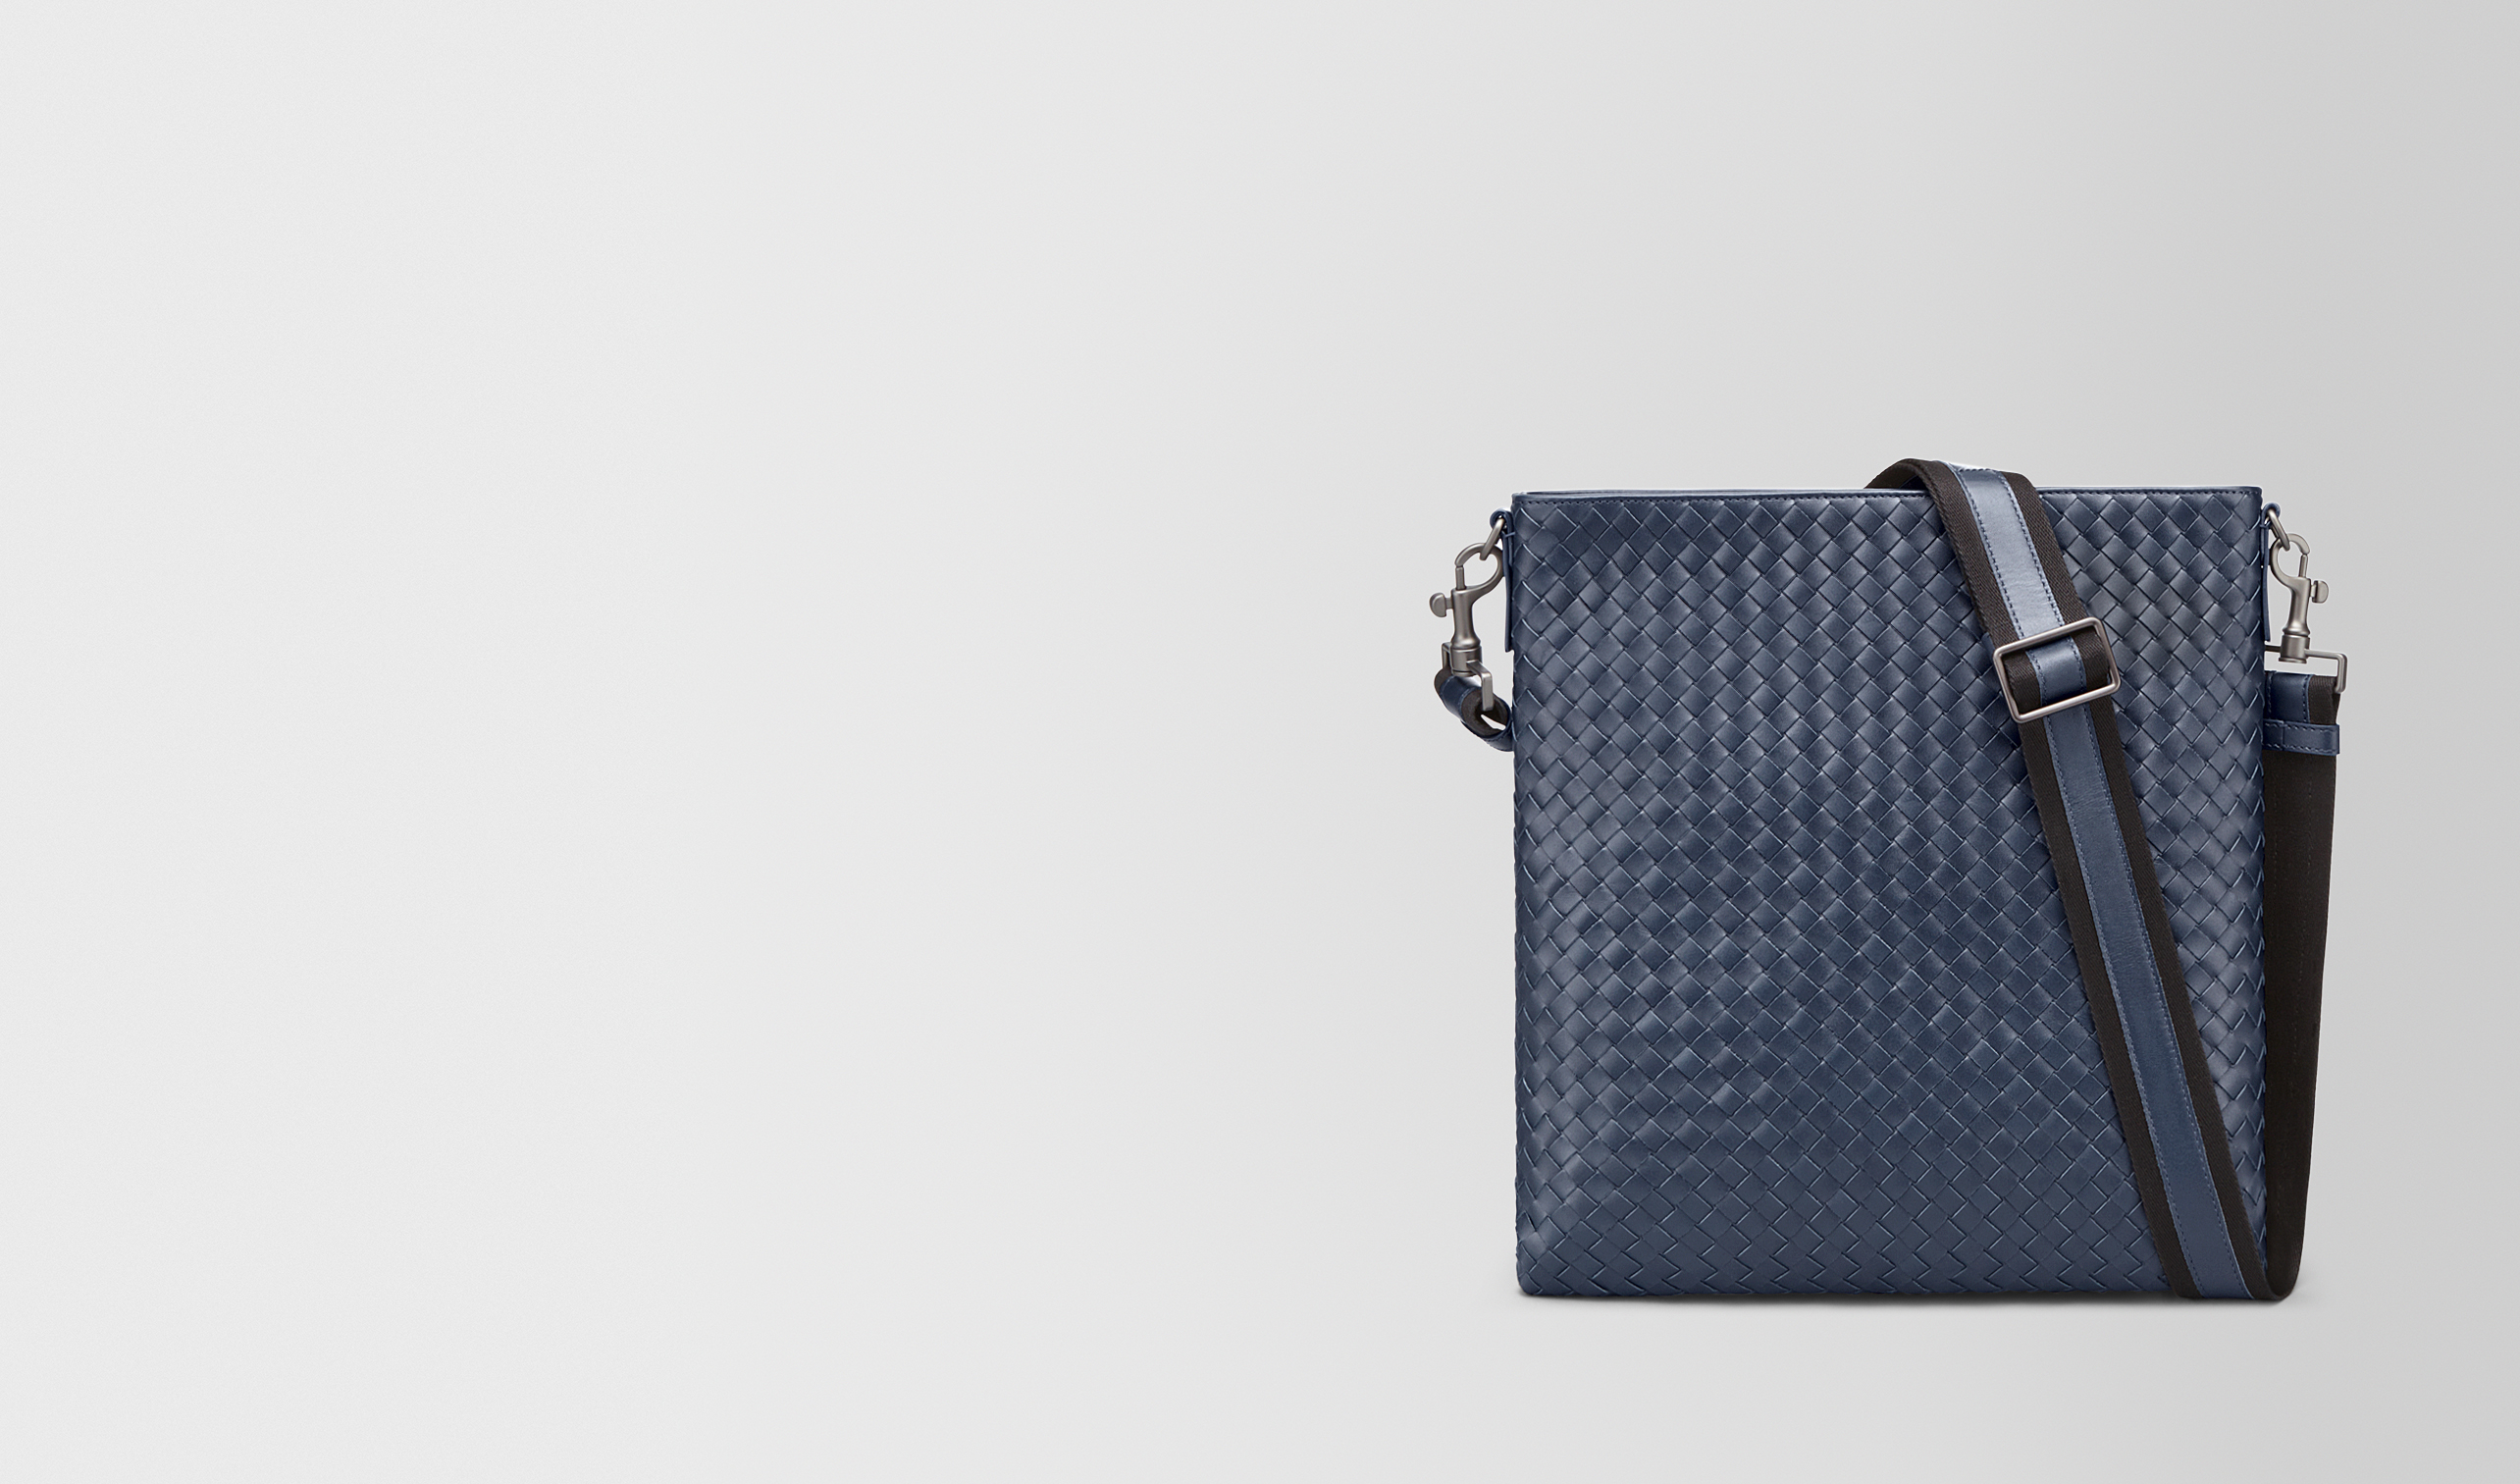 BOTTEGA VENETA Messenger Tasche U GROSSE MESSENGER-TASCHE AUS INTRECCIATO VN IN LIGHT TOURMALINE pl